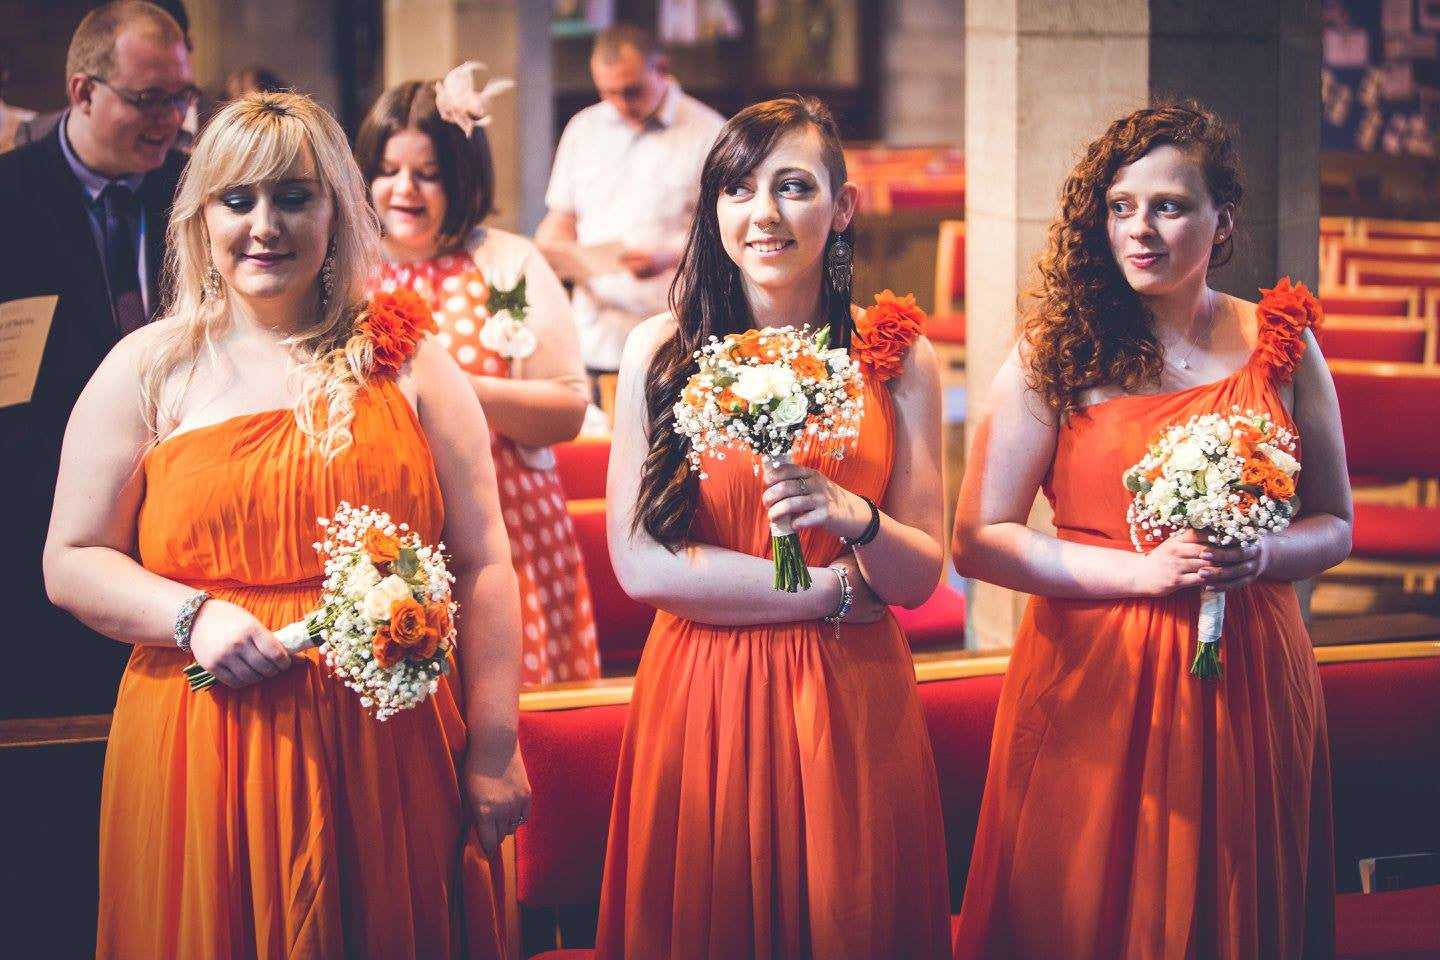 Bridesmaid's with white and orange Rose and Gypsophila bouquets.